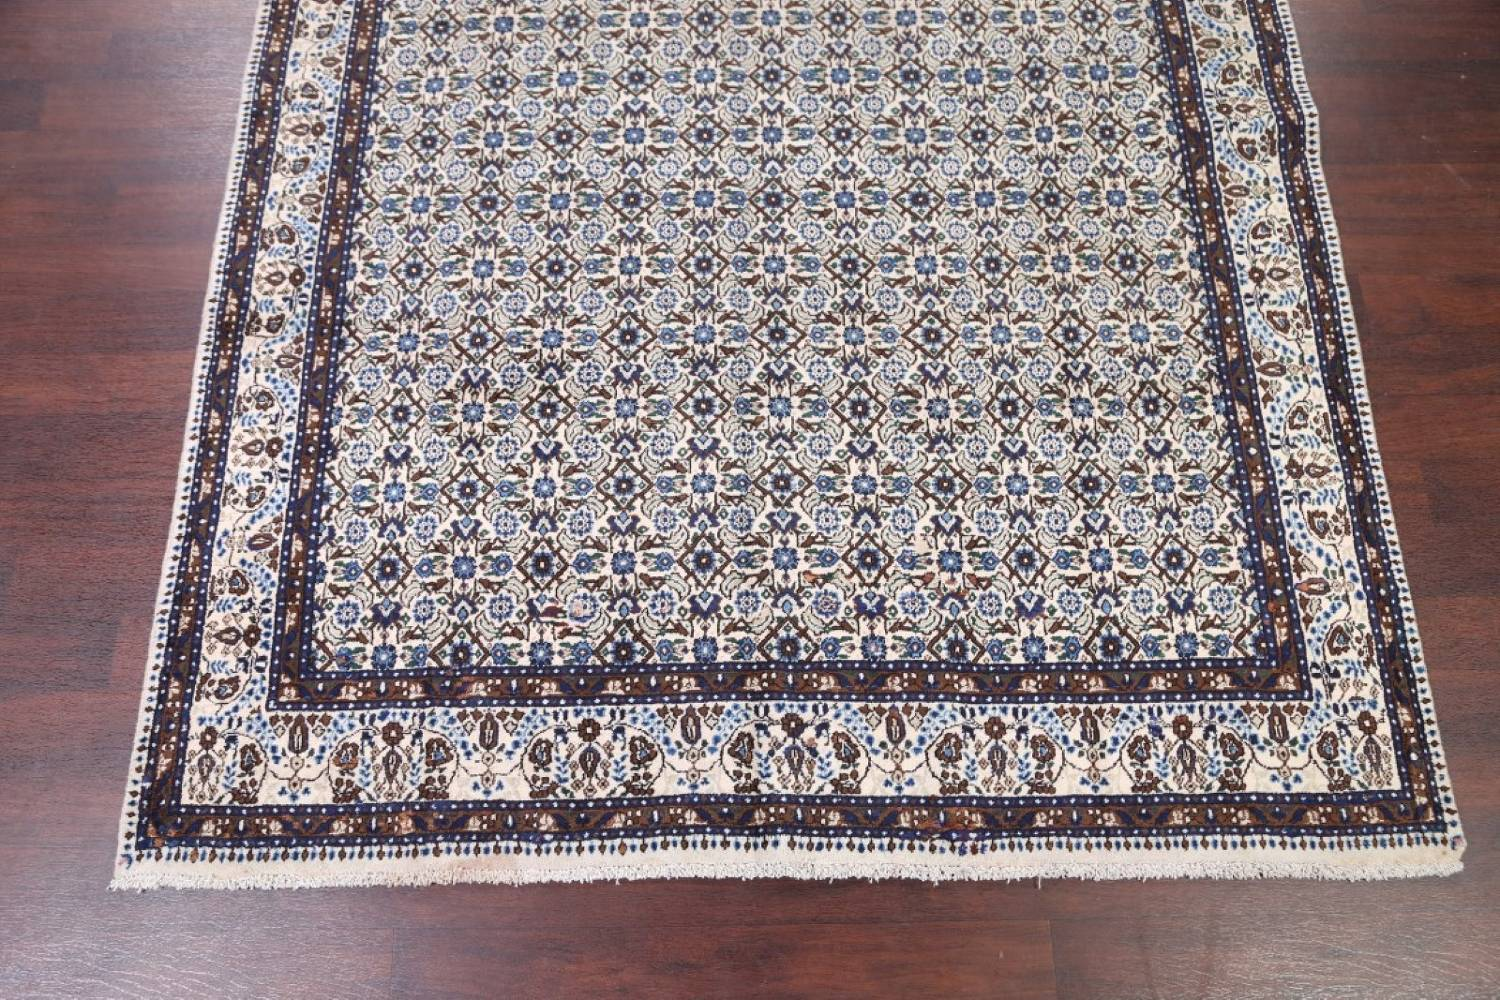 All-Over Floral 7x11 Mood Persian Wool Area Rug image 5